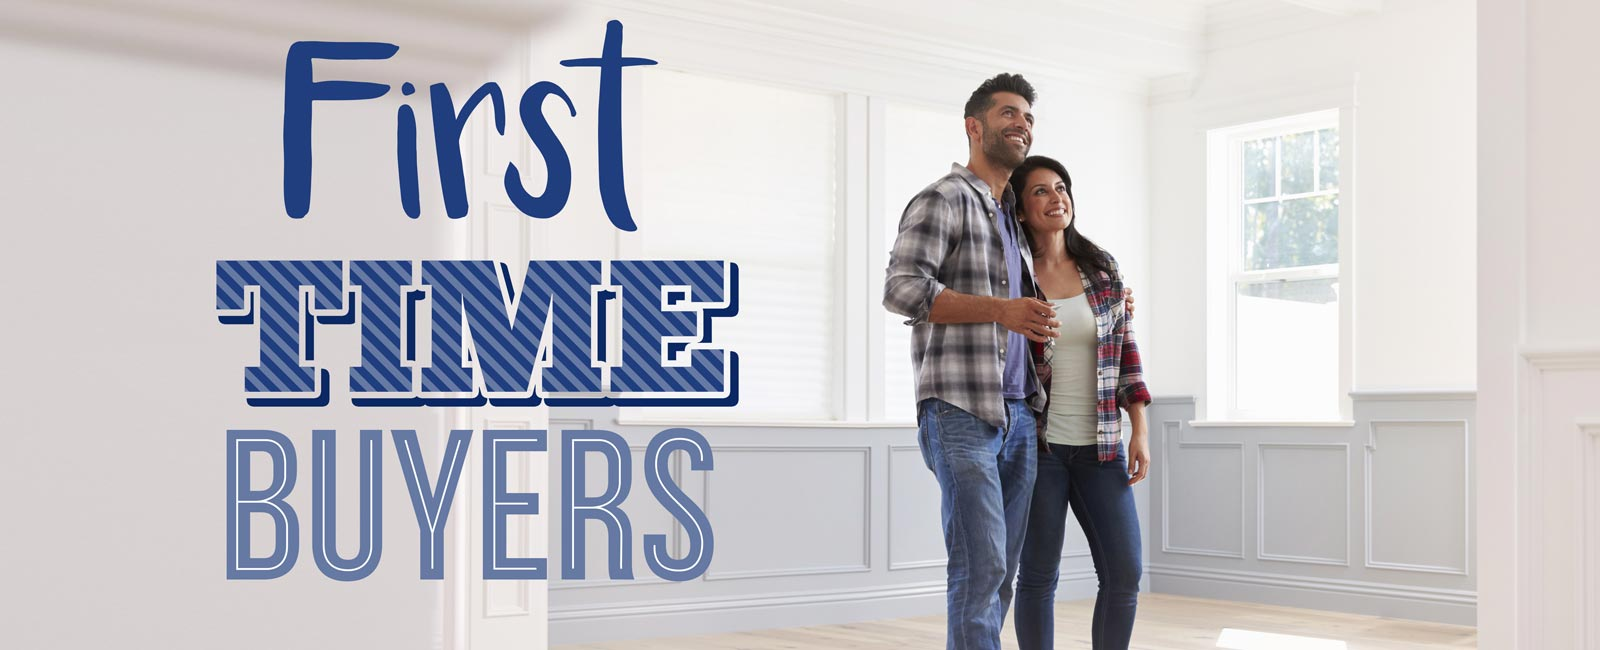 First time homebuyers new house